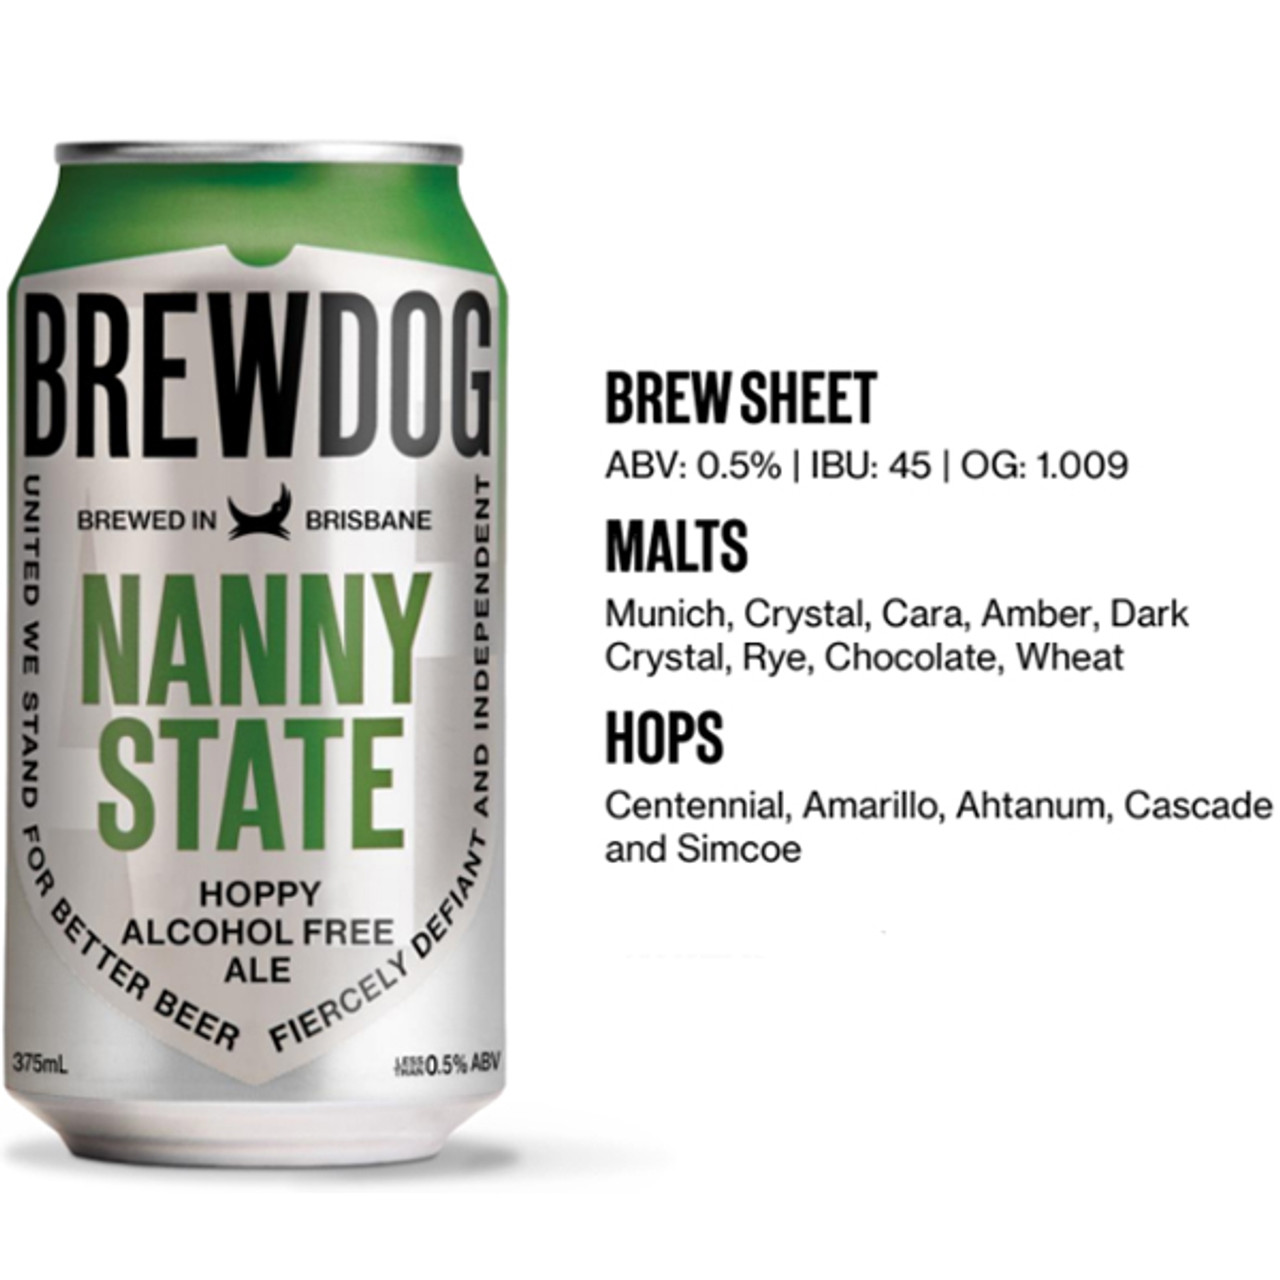 Picture of Brewdog Nanny State ingredients. Shop online at Rat Dog Drinks. Support local. Delivery Australia wide with tracking details.